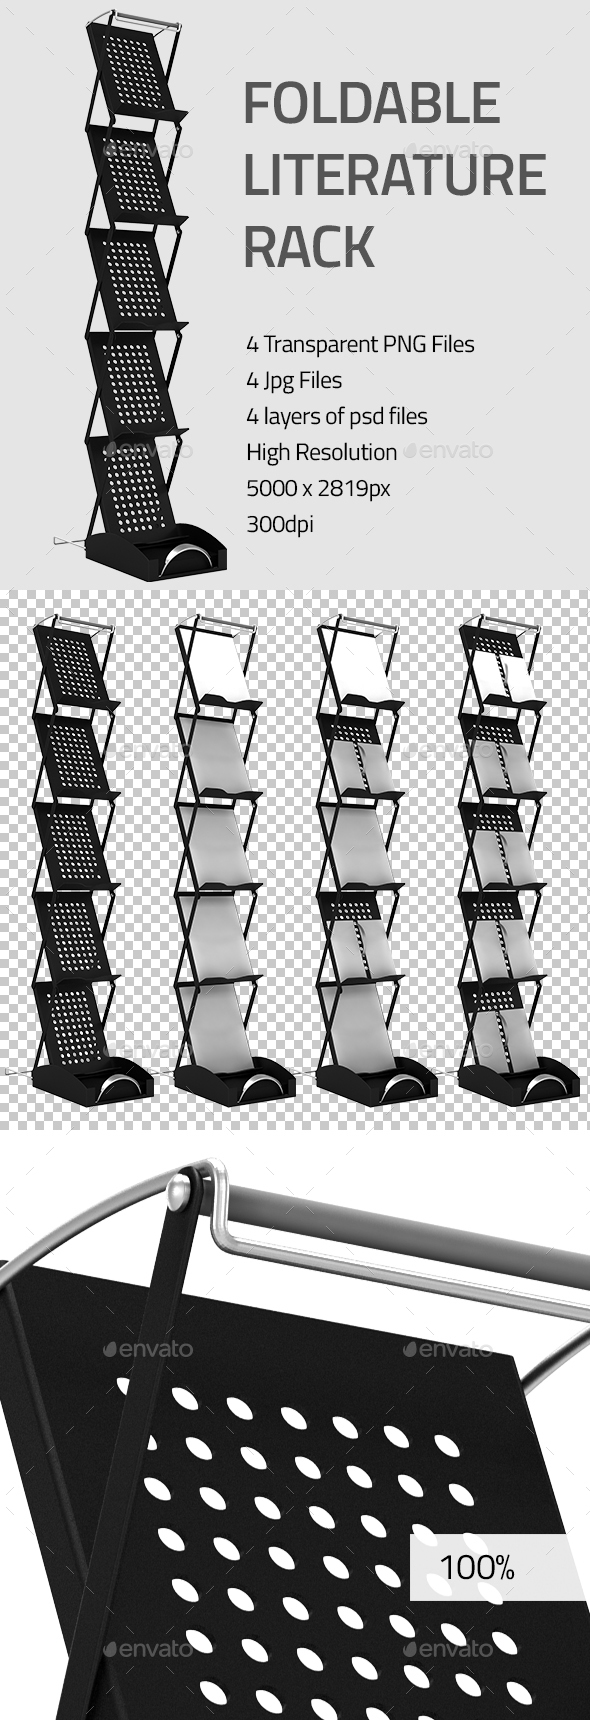 Foldable Literature Rack - 3D Backgrounds